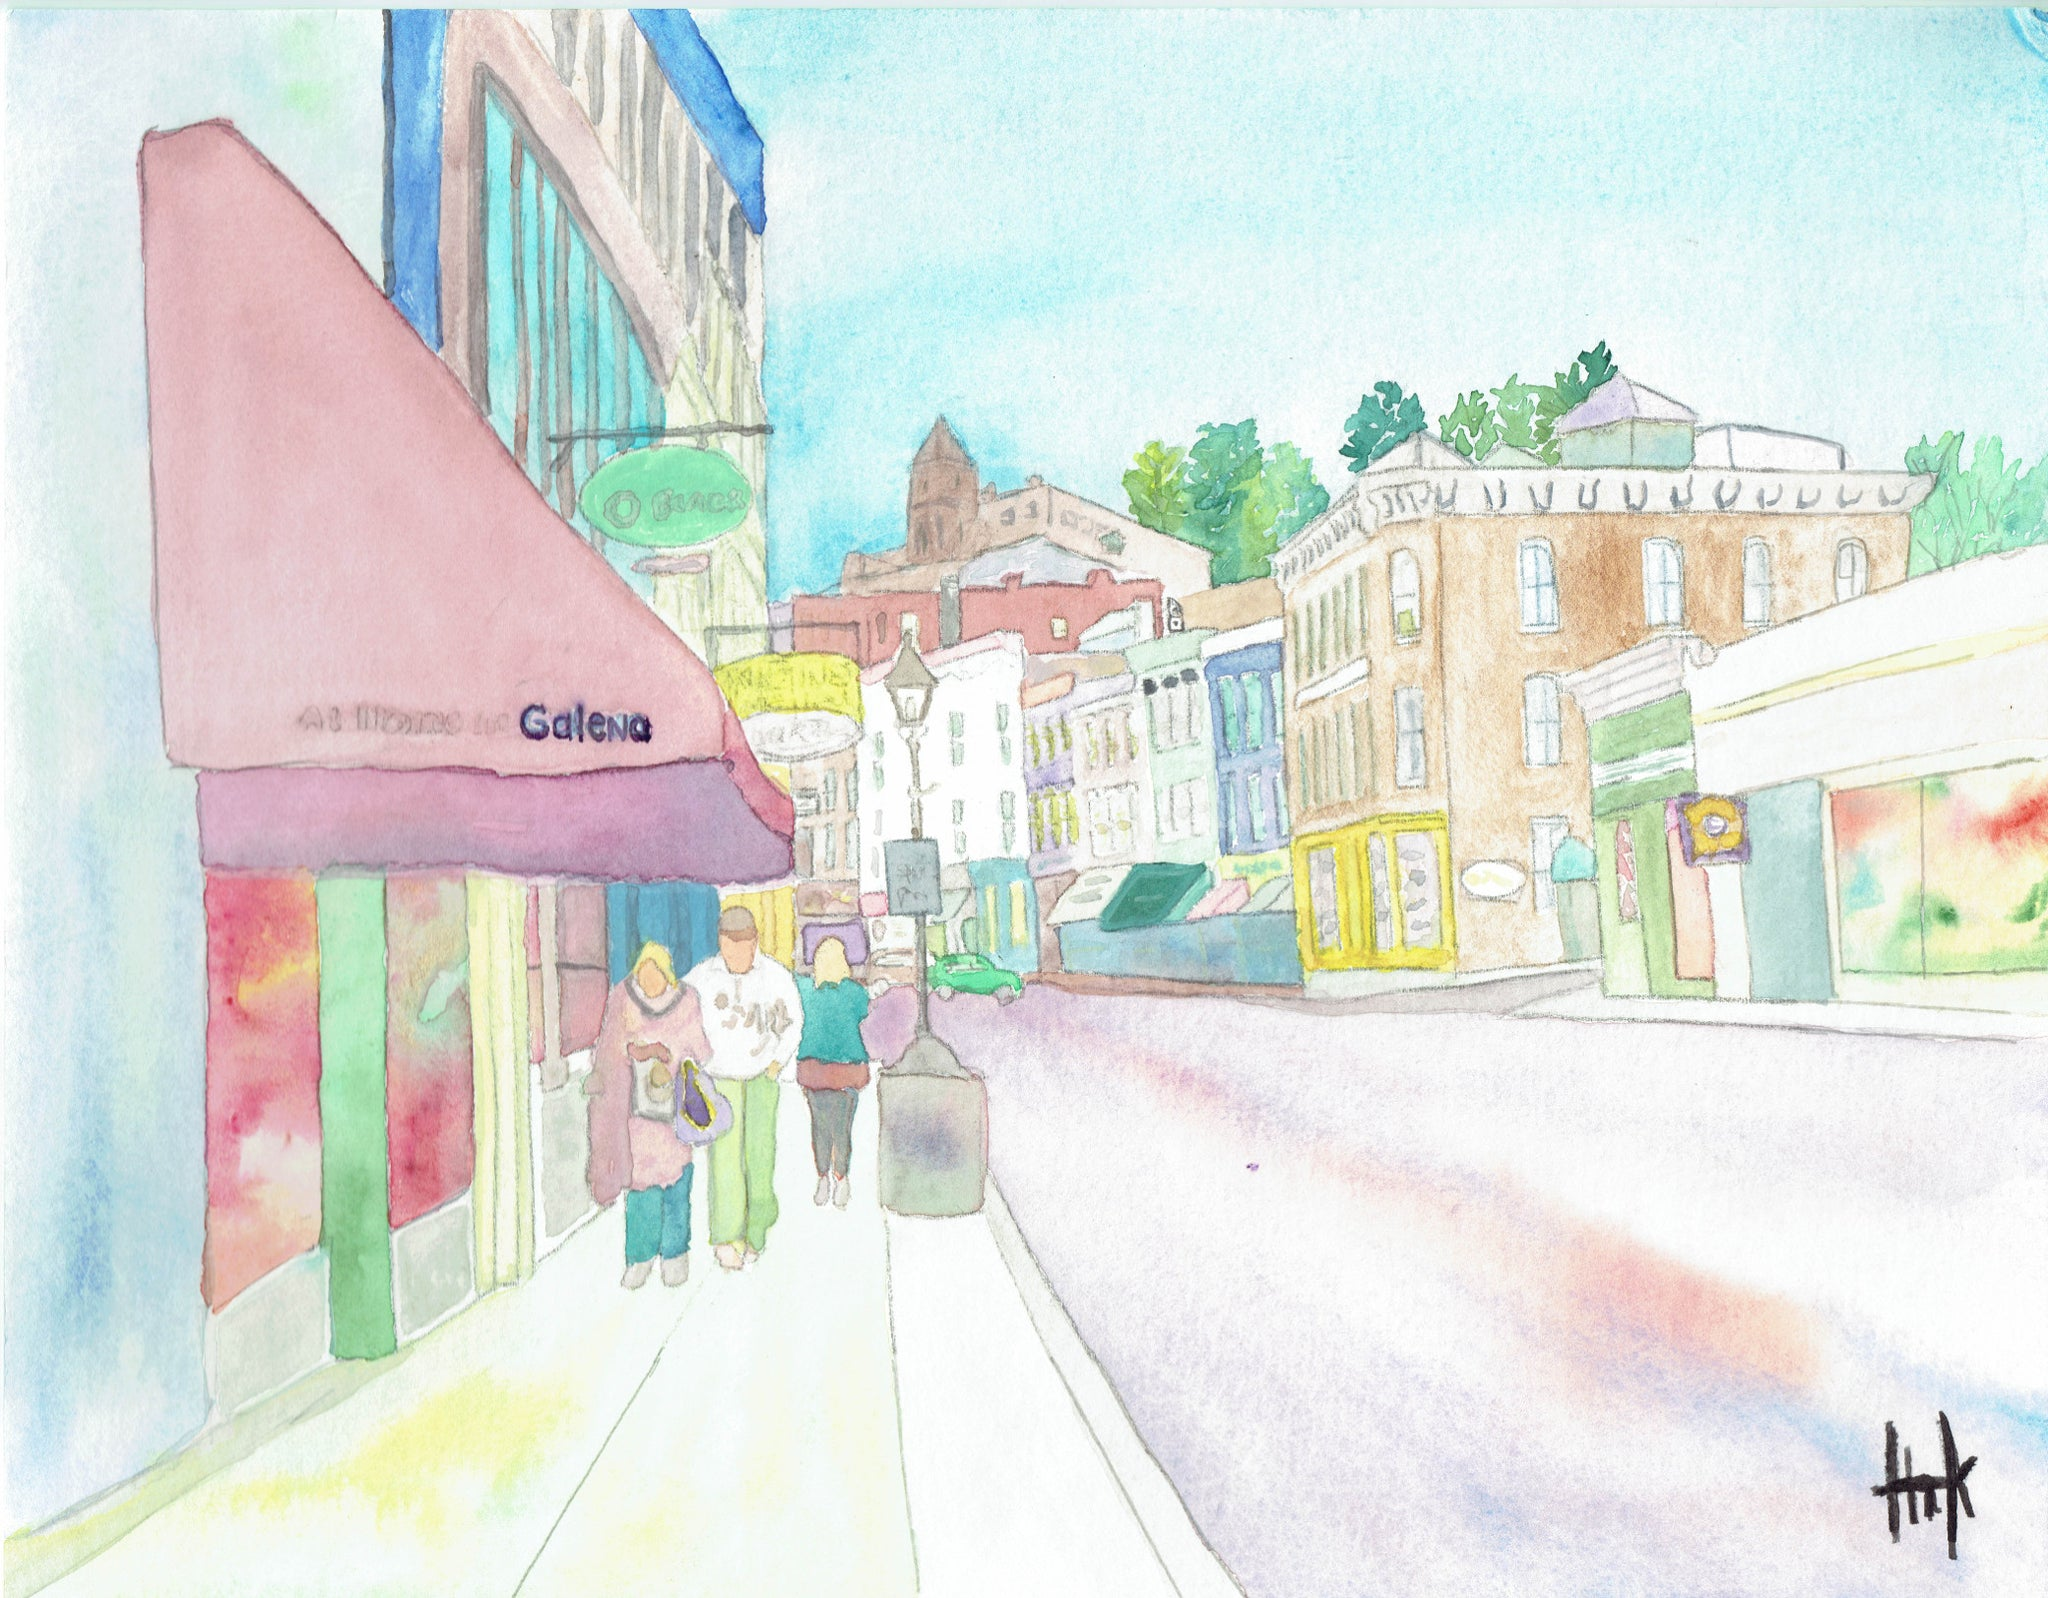 GALENA MAIN STREET - CARDS